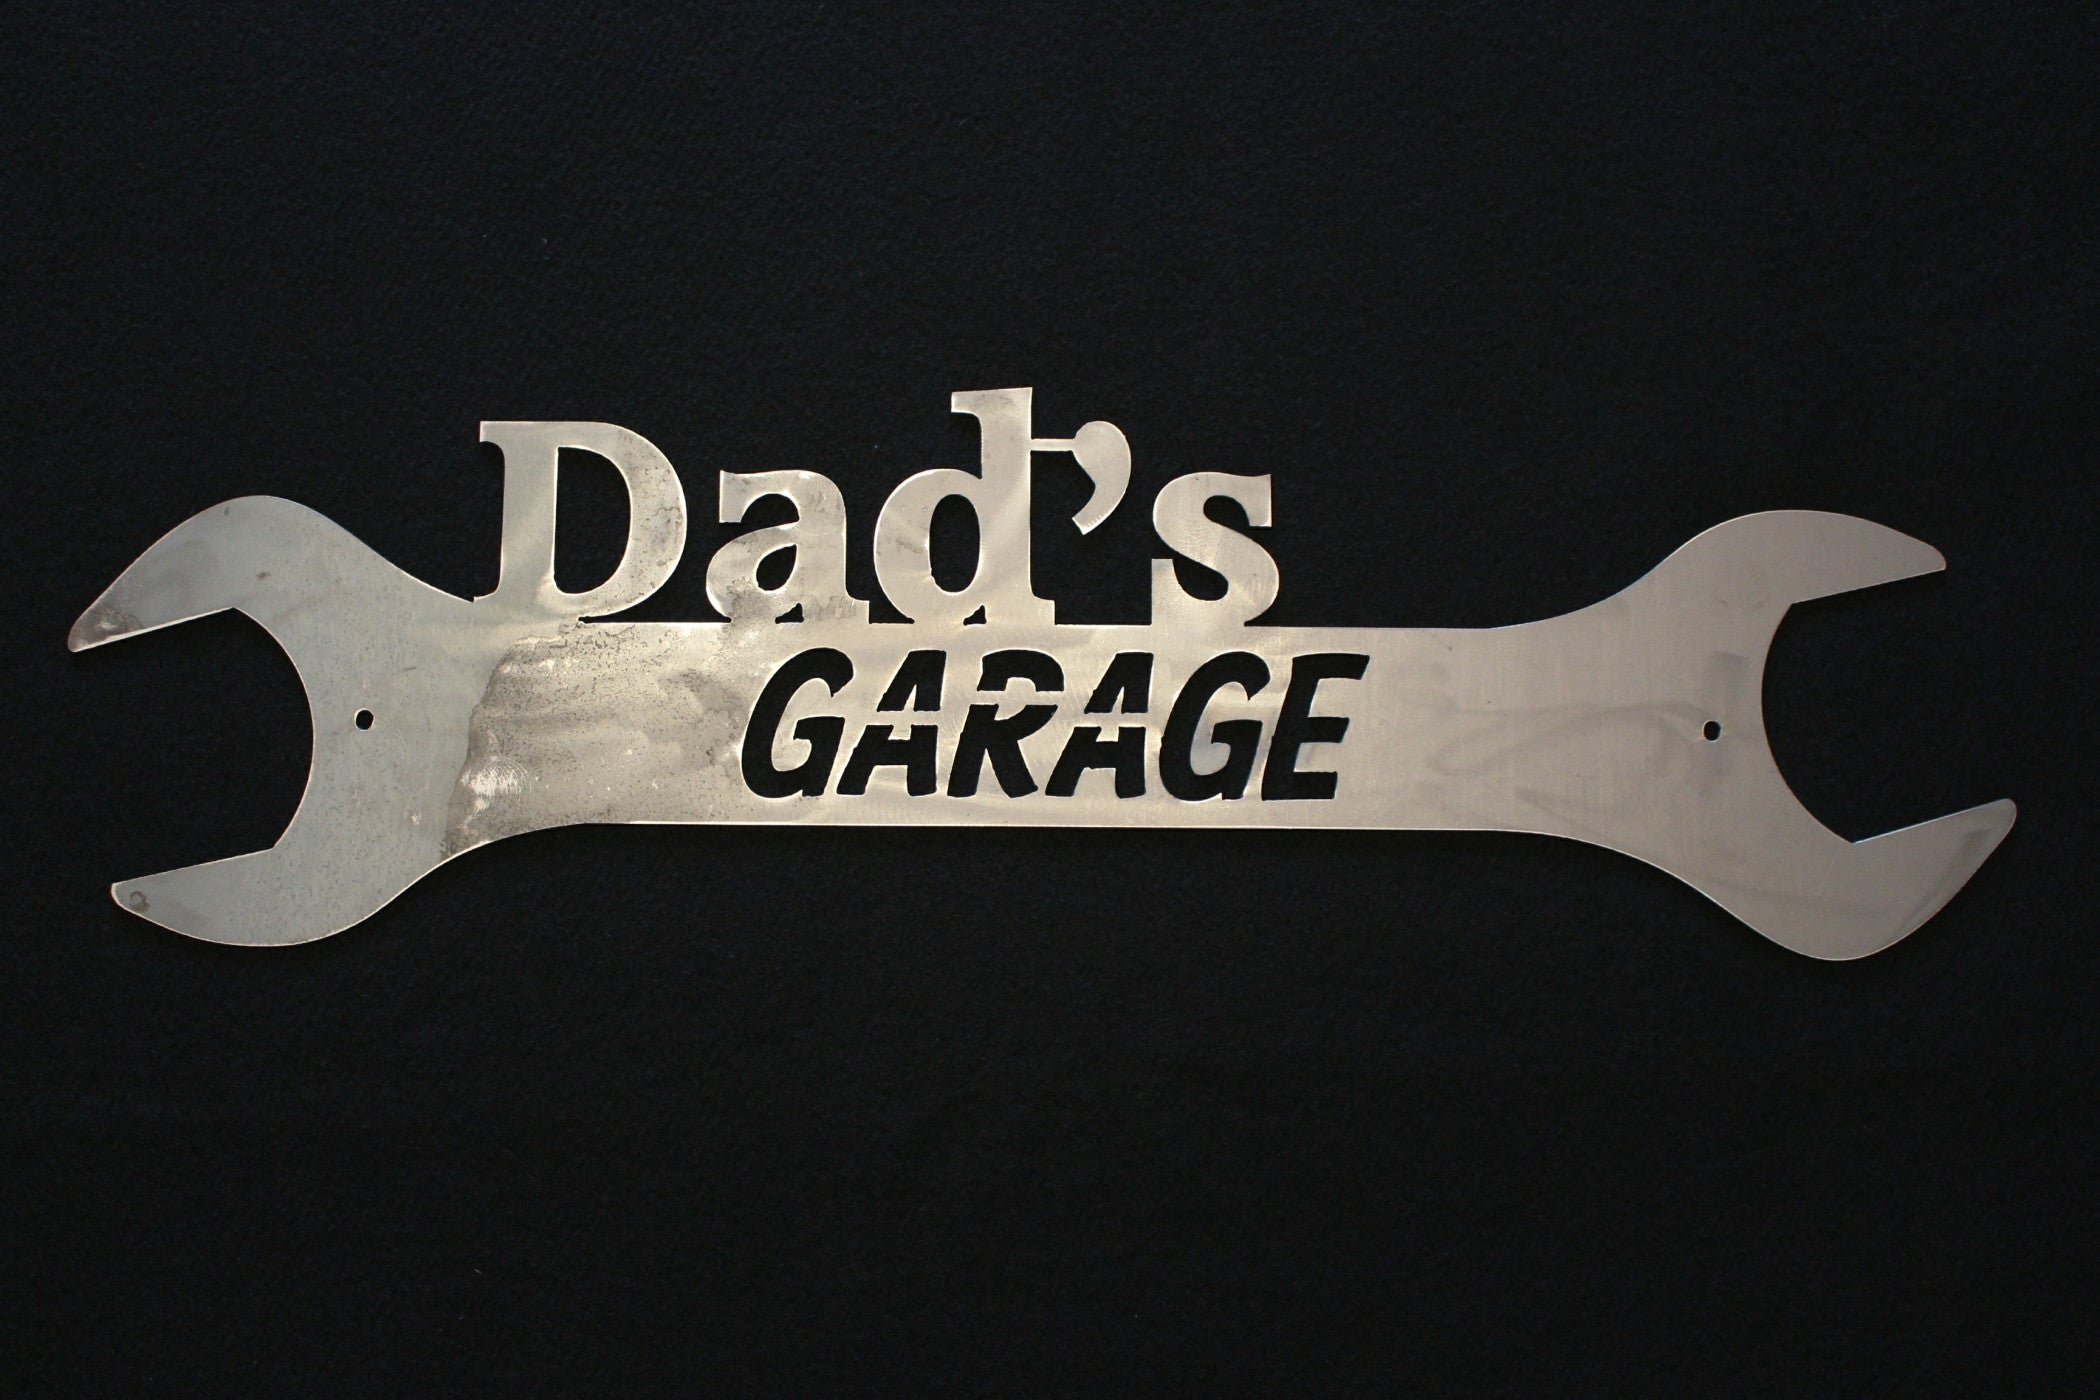 w beer gear bg racing edition signs brew custom sign personalized garage collections bs heitzman